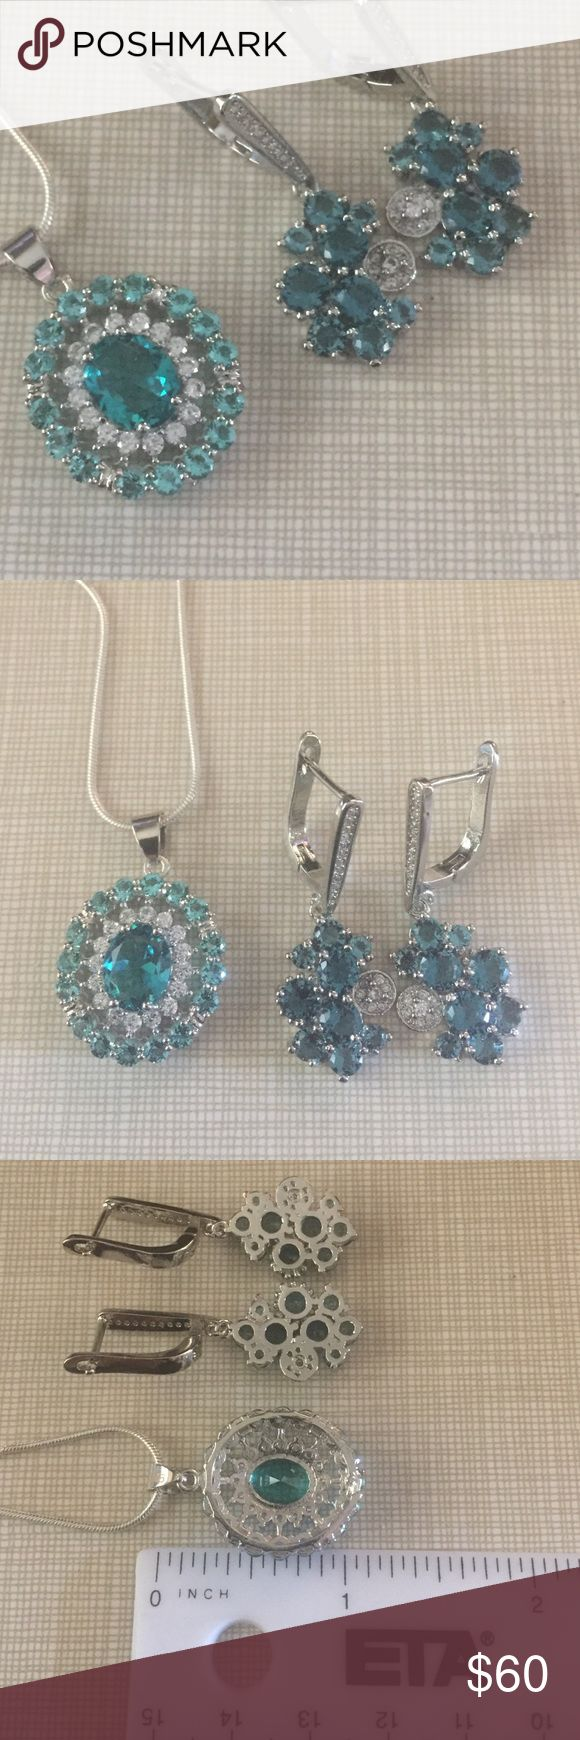 JUST in sophistication at its best aquamarine FIRM Pendant is 30x18 mm clarity of stone is IF to VVS treatment heated and filled faceted with cz stamped silver it is gorgeous earrings  London blue are 35x15 mm gemstone size is 5 mm clarity IF to VVS stunning and sophisticated NWOT price is my lowest FIRM Jewelry Necklaces